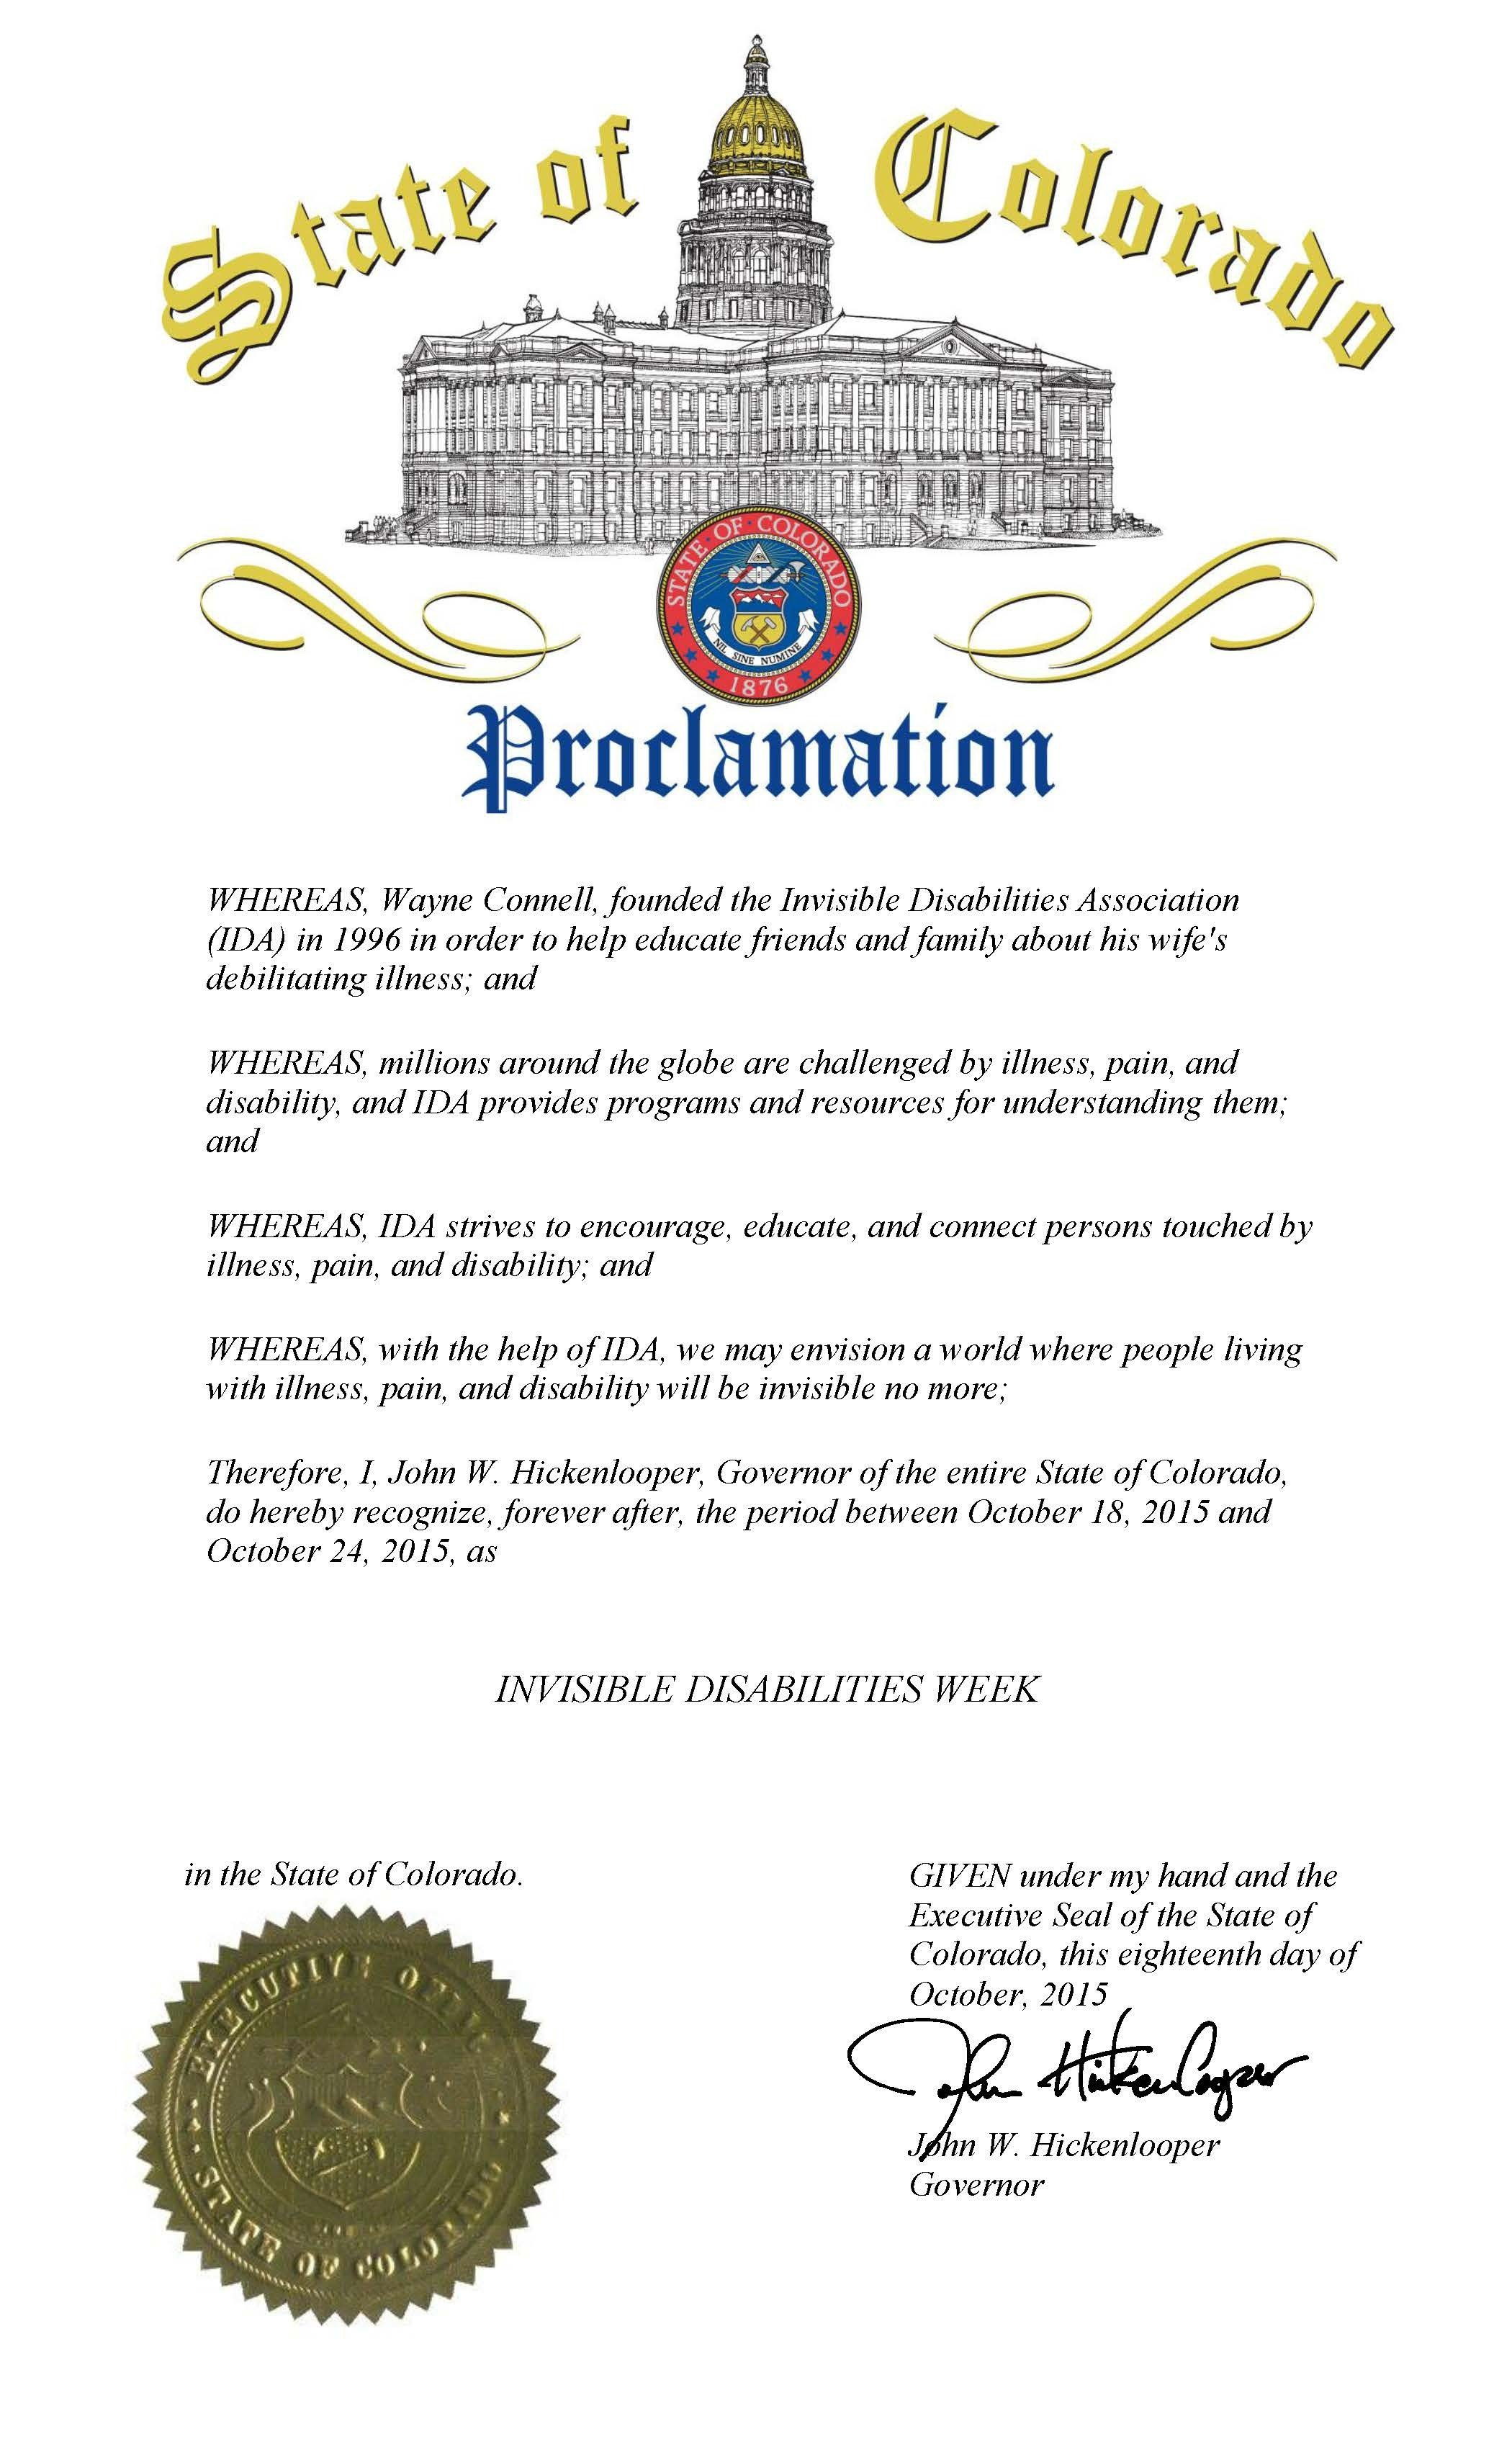 Colorado Governor's Proclamation Invisible Disabilities Week 10-18-15 thru 10-24-15